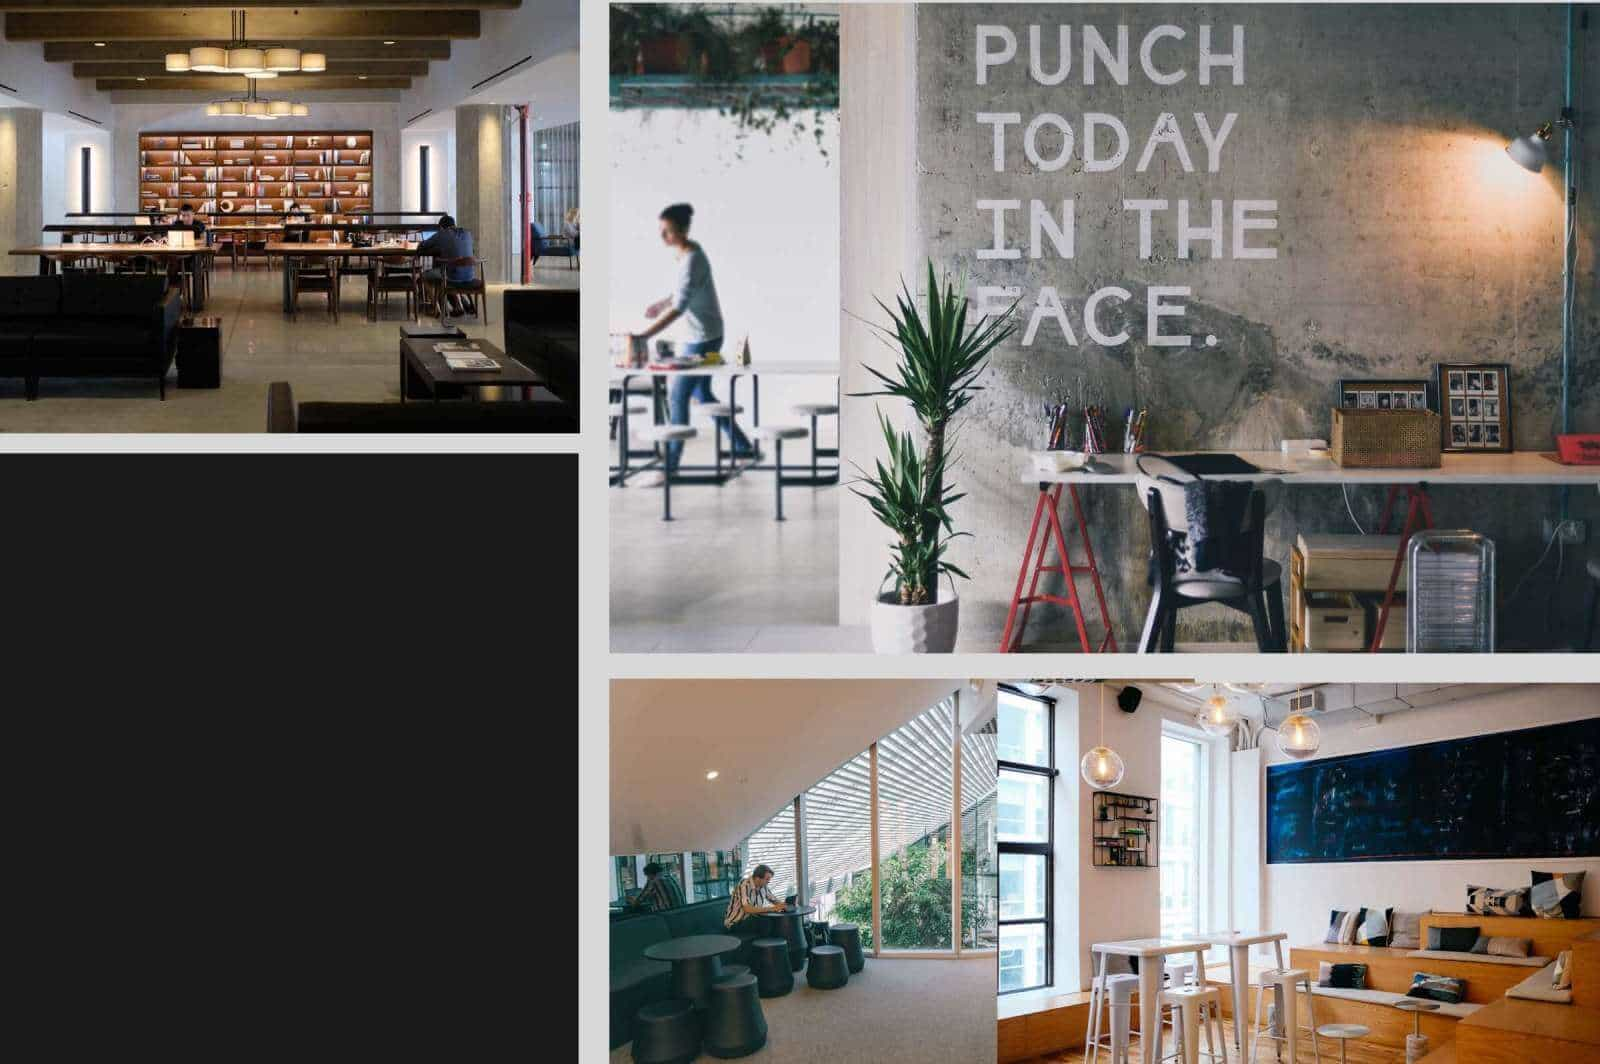 wall decoration ideas in office spaces